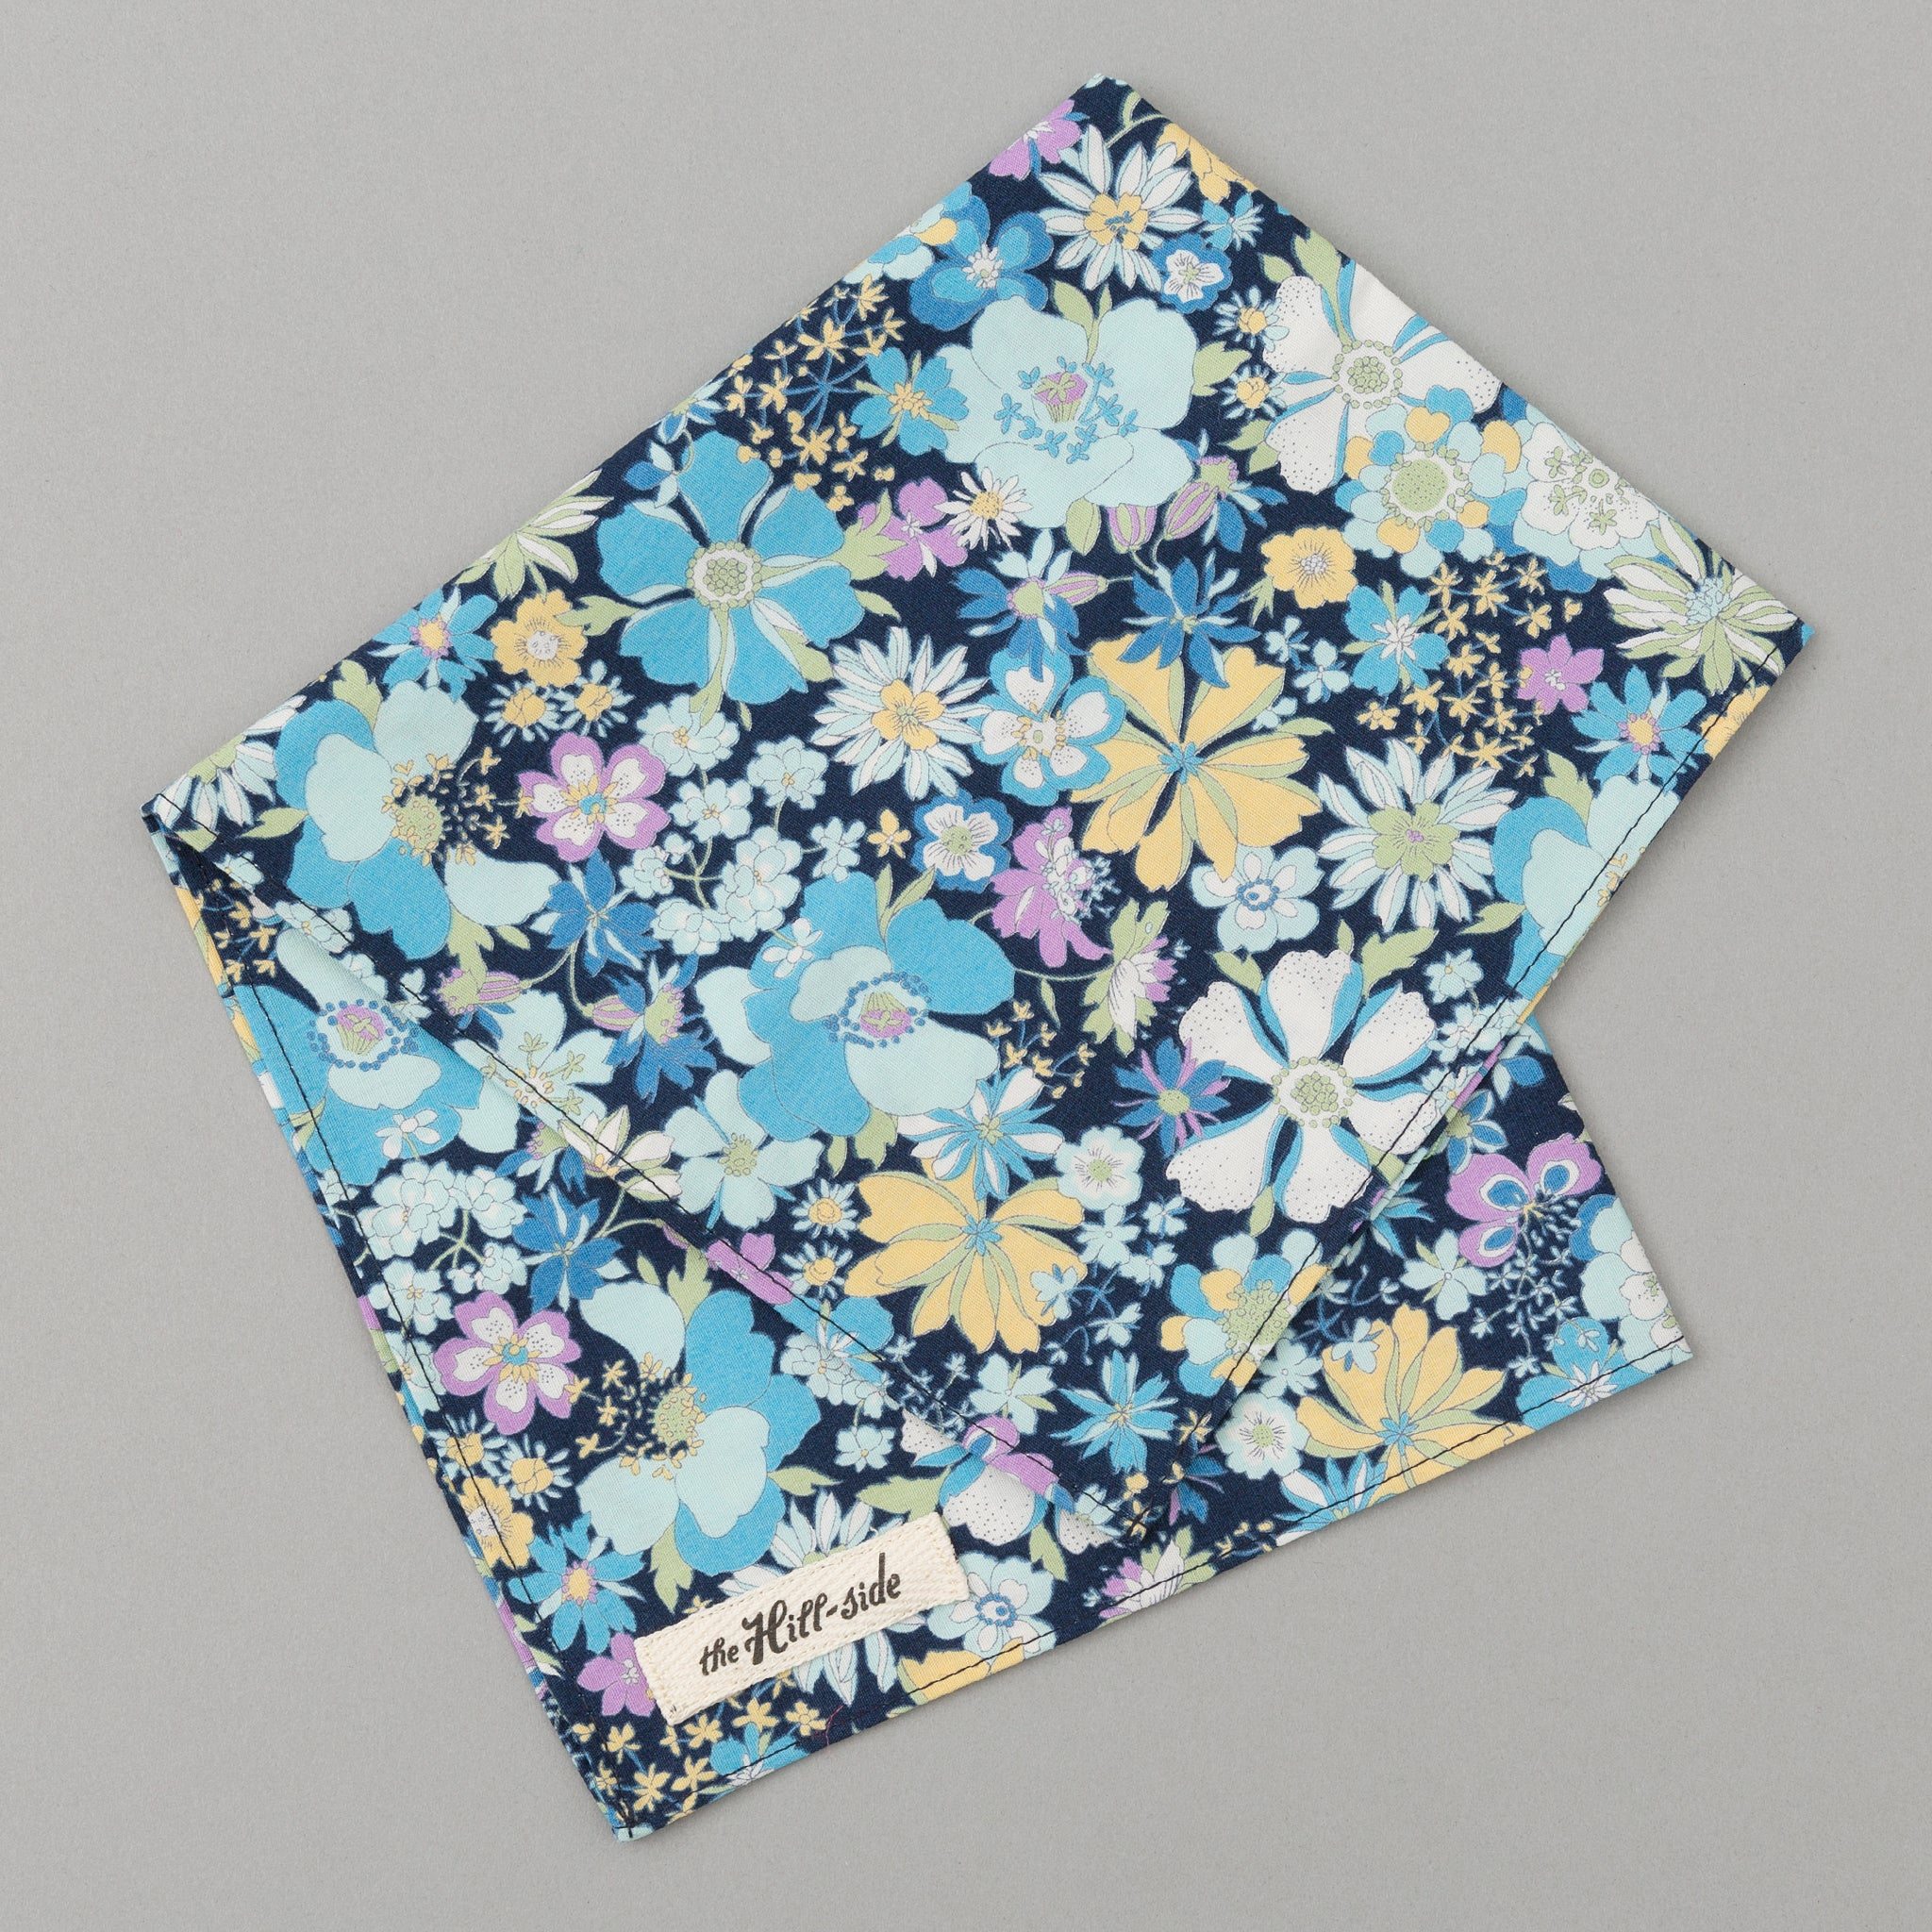 The Hill-Side - Psychedelic Floral Print Pocket Square, Blue - PS1-490 - image 1